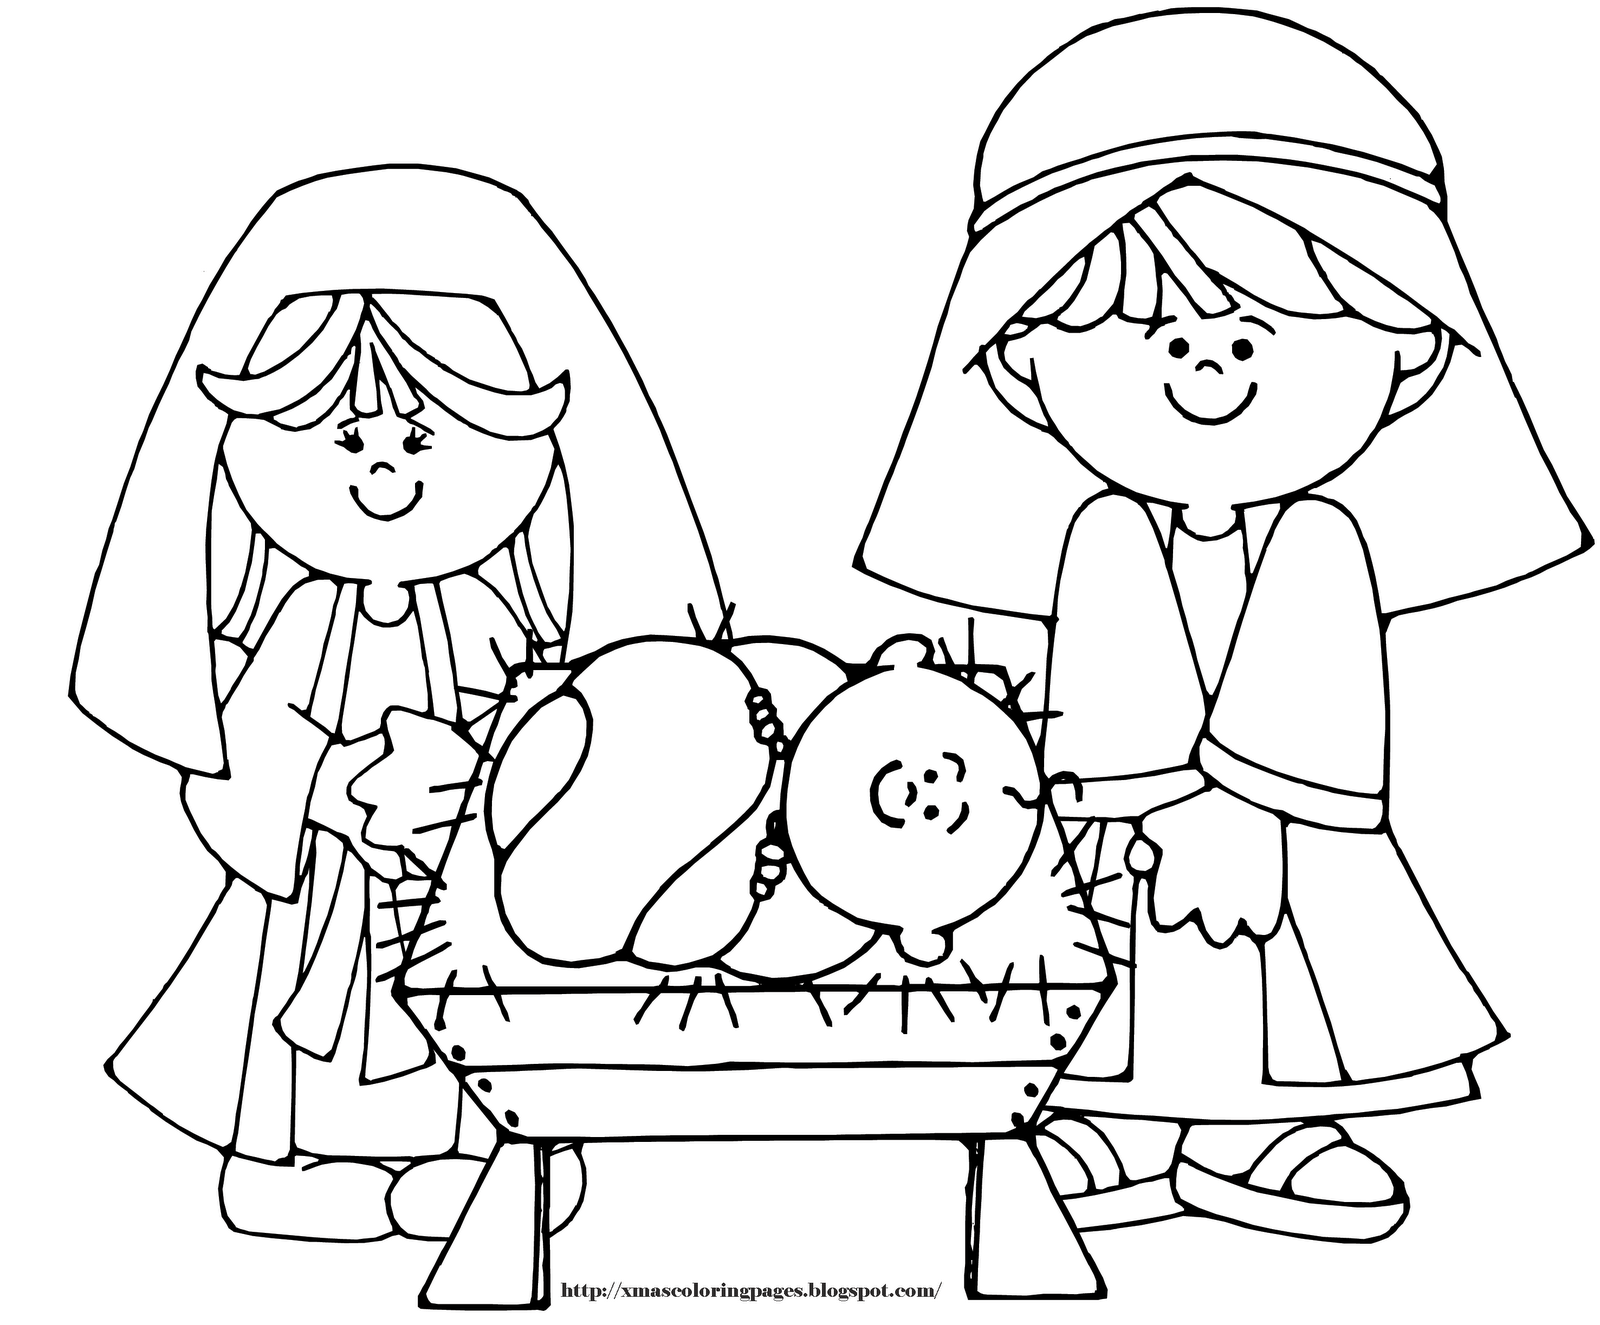 coloring picture of baby jesus baby jesus in a manger in nativity coloring page color luna baby picture jesus of coloring